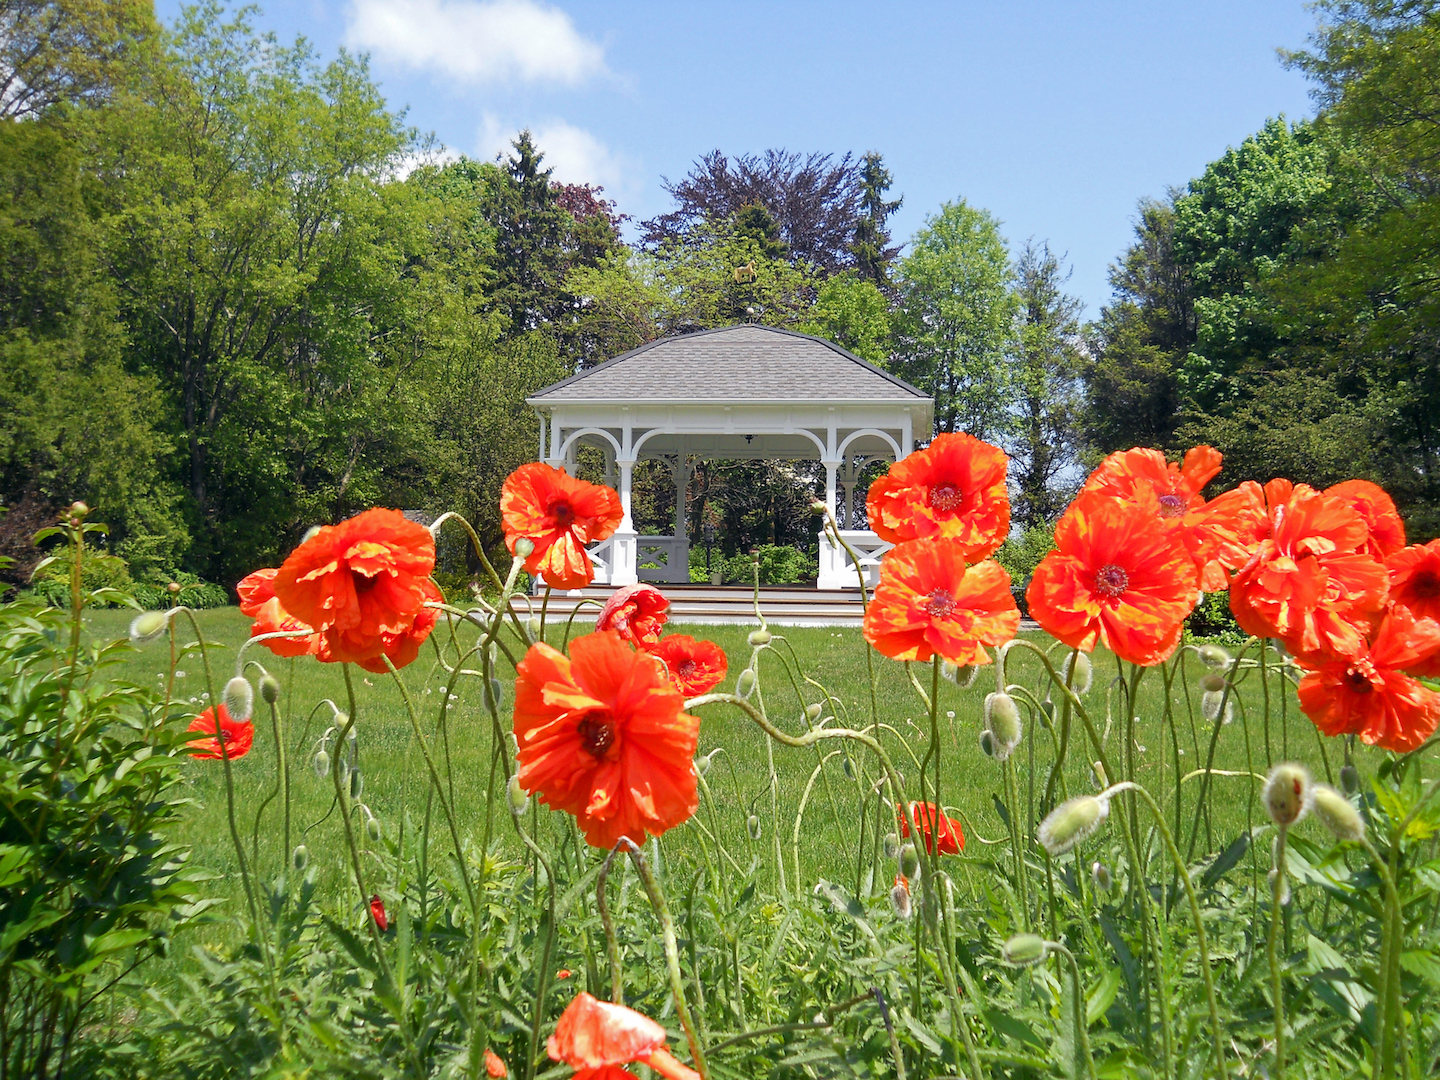 Orange Poppies at Clouds Hill